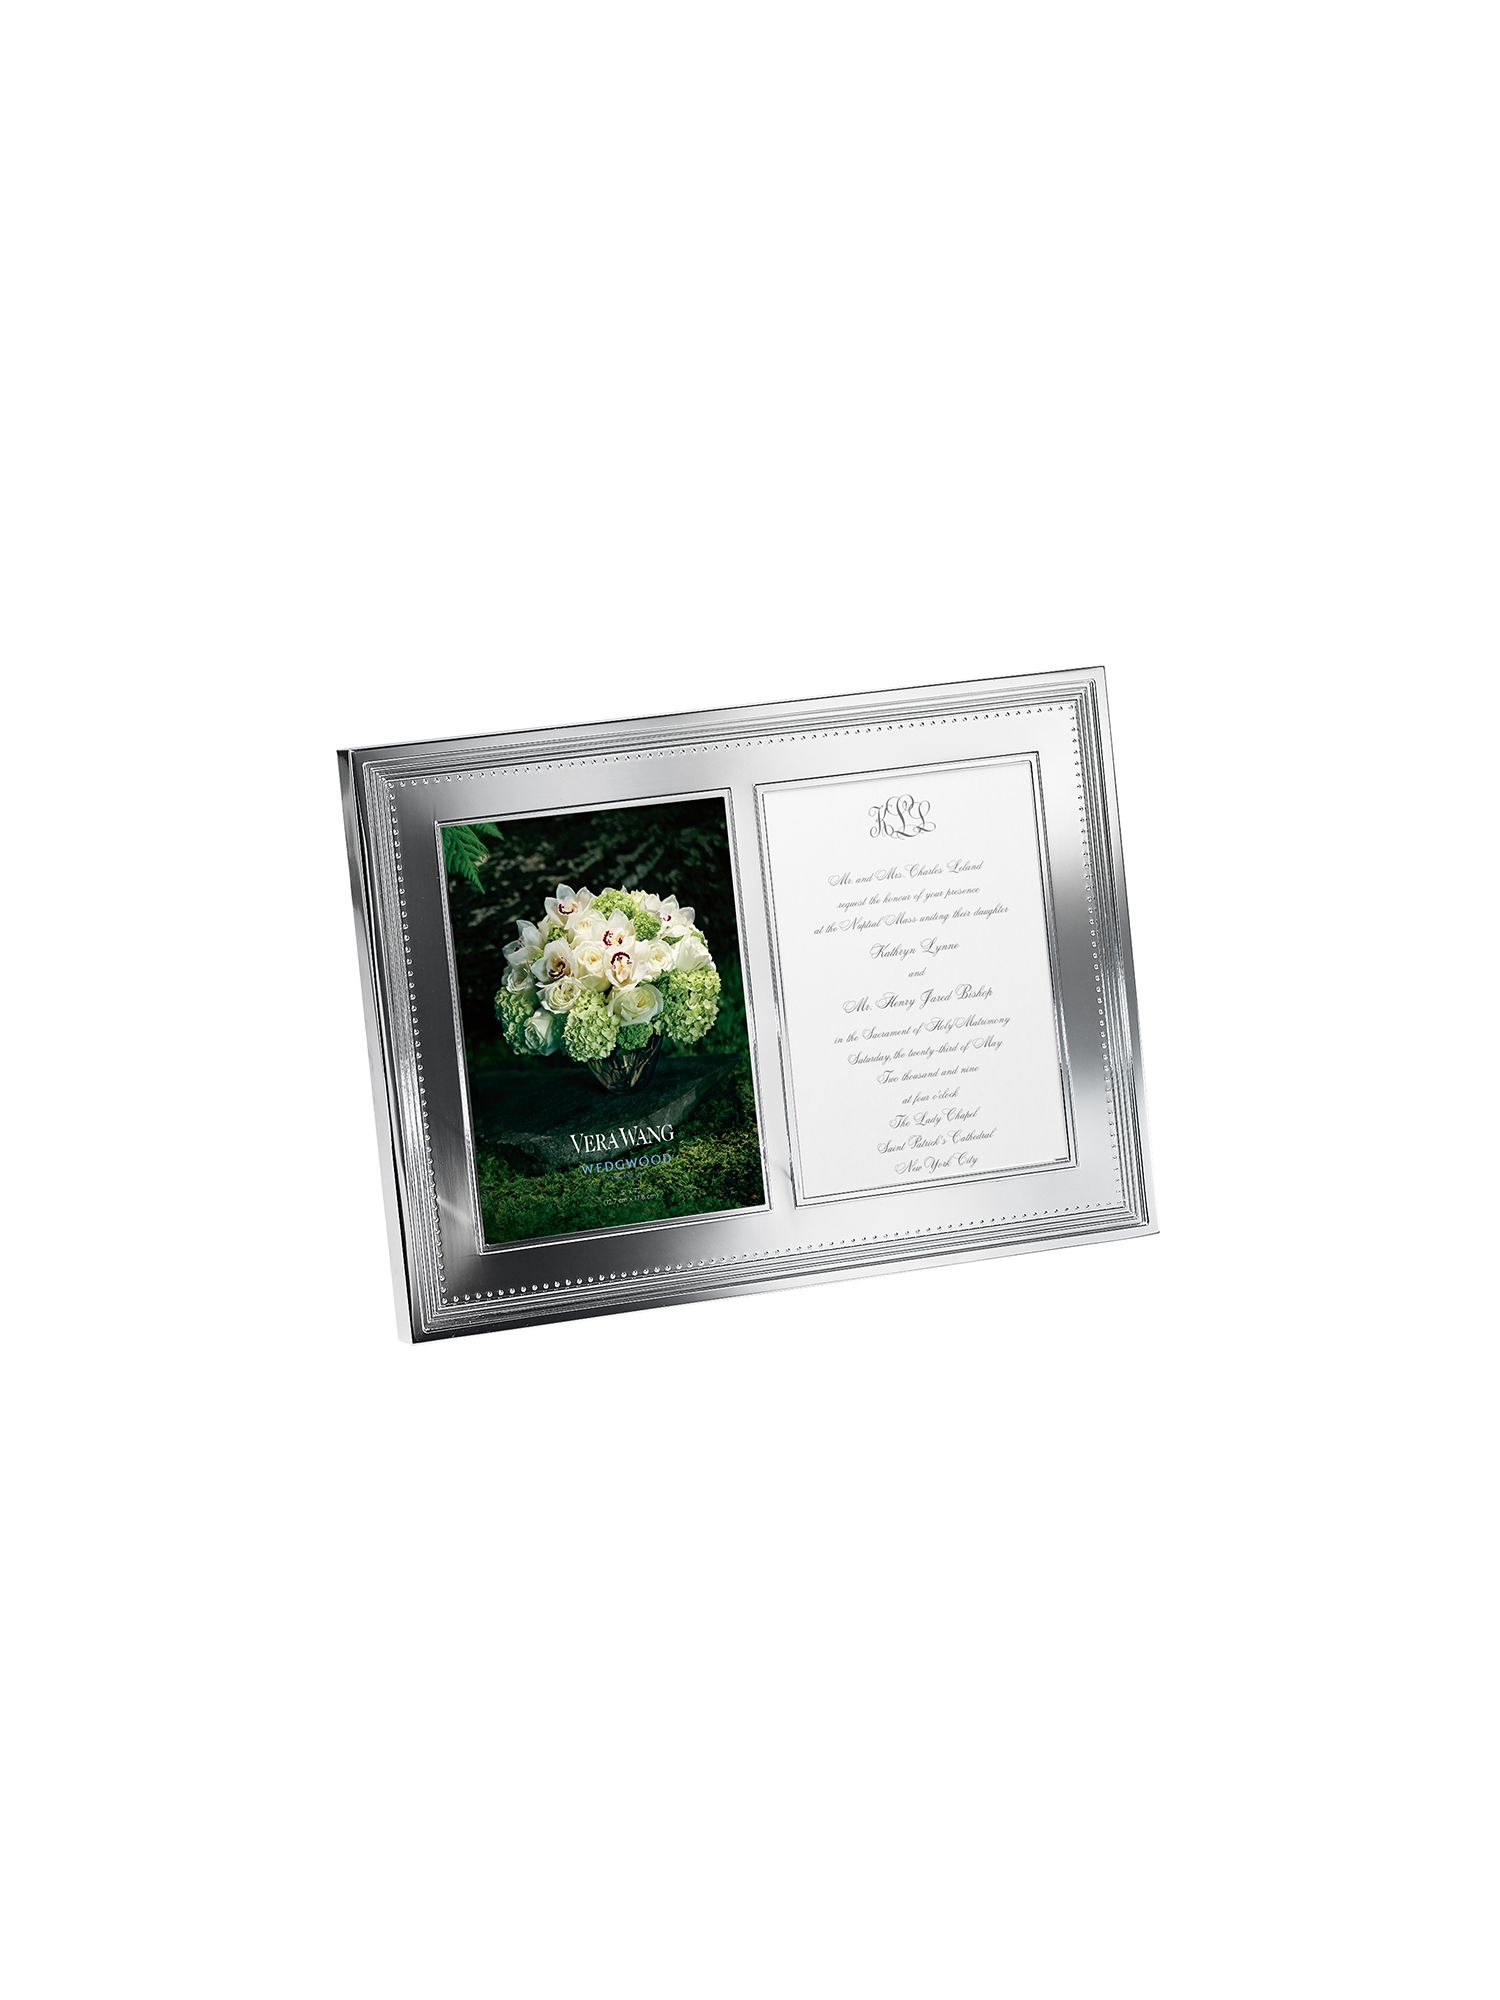 Vera wang grosgrain double invitation frame 5.7in